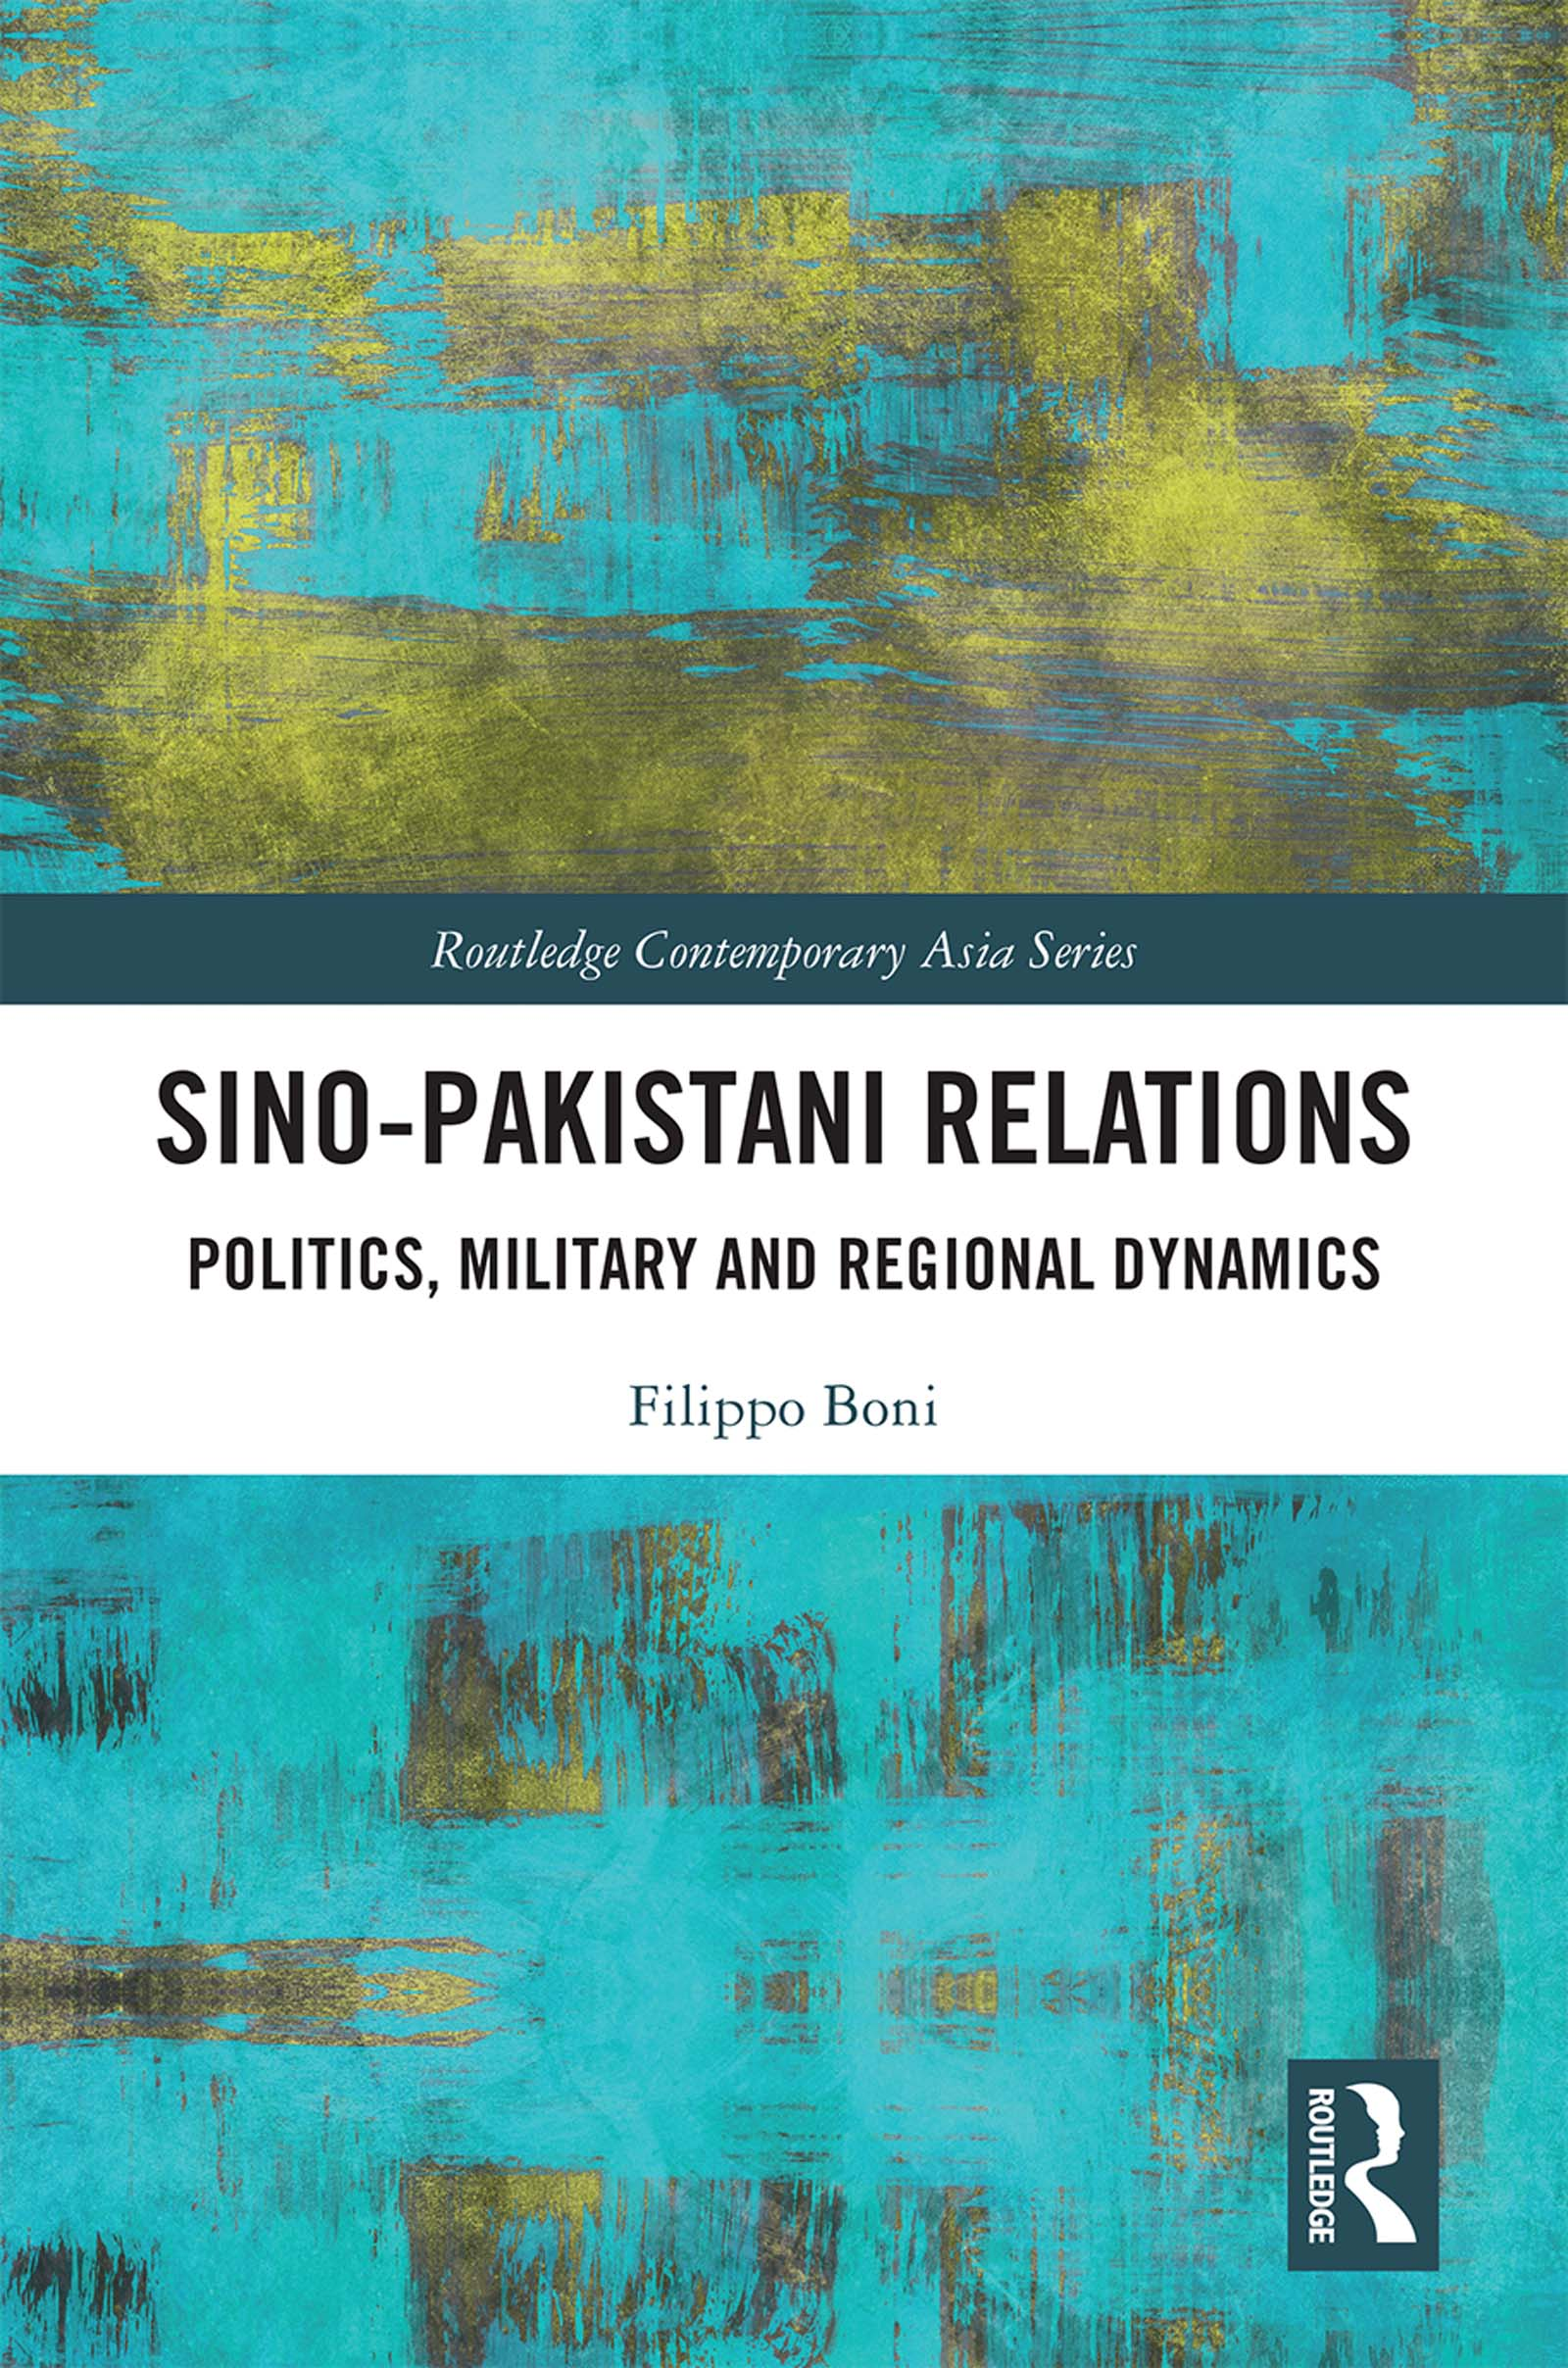 Sino-Pakistani Relations: Politics, Military and Regional Dynamics book cover